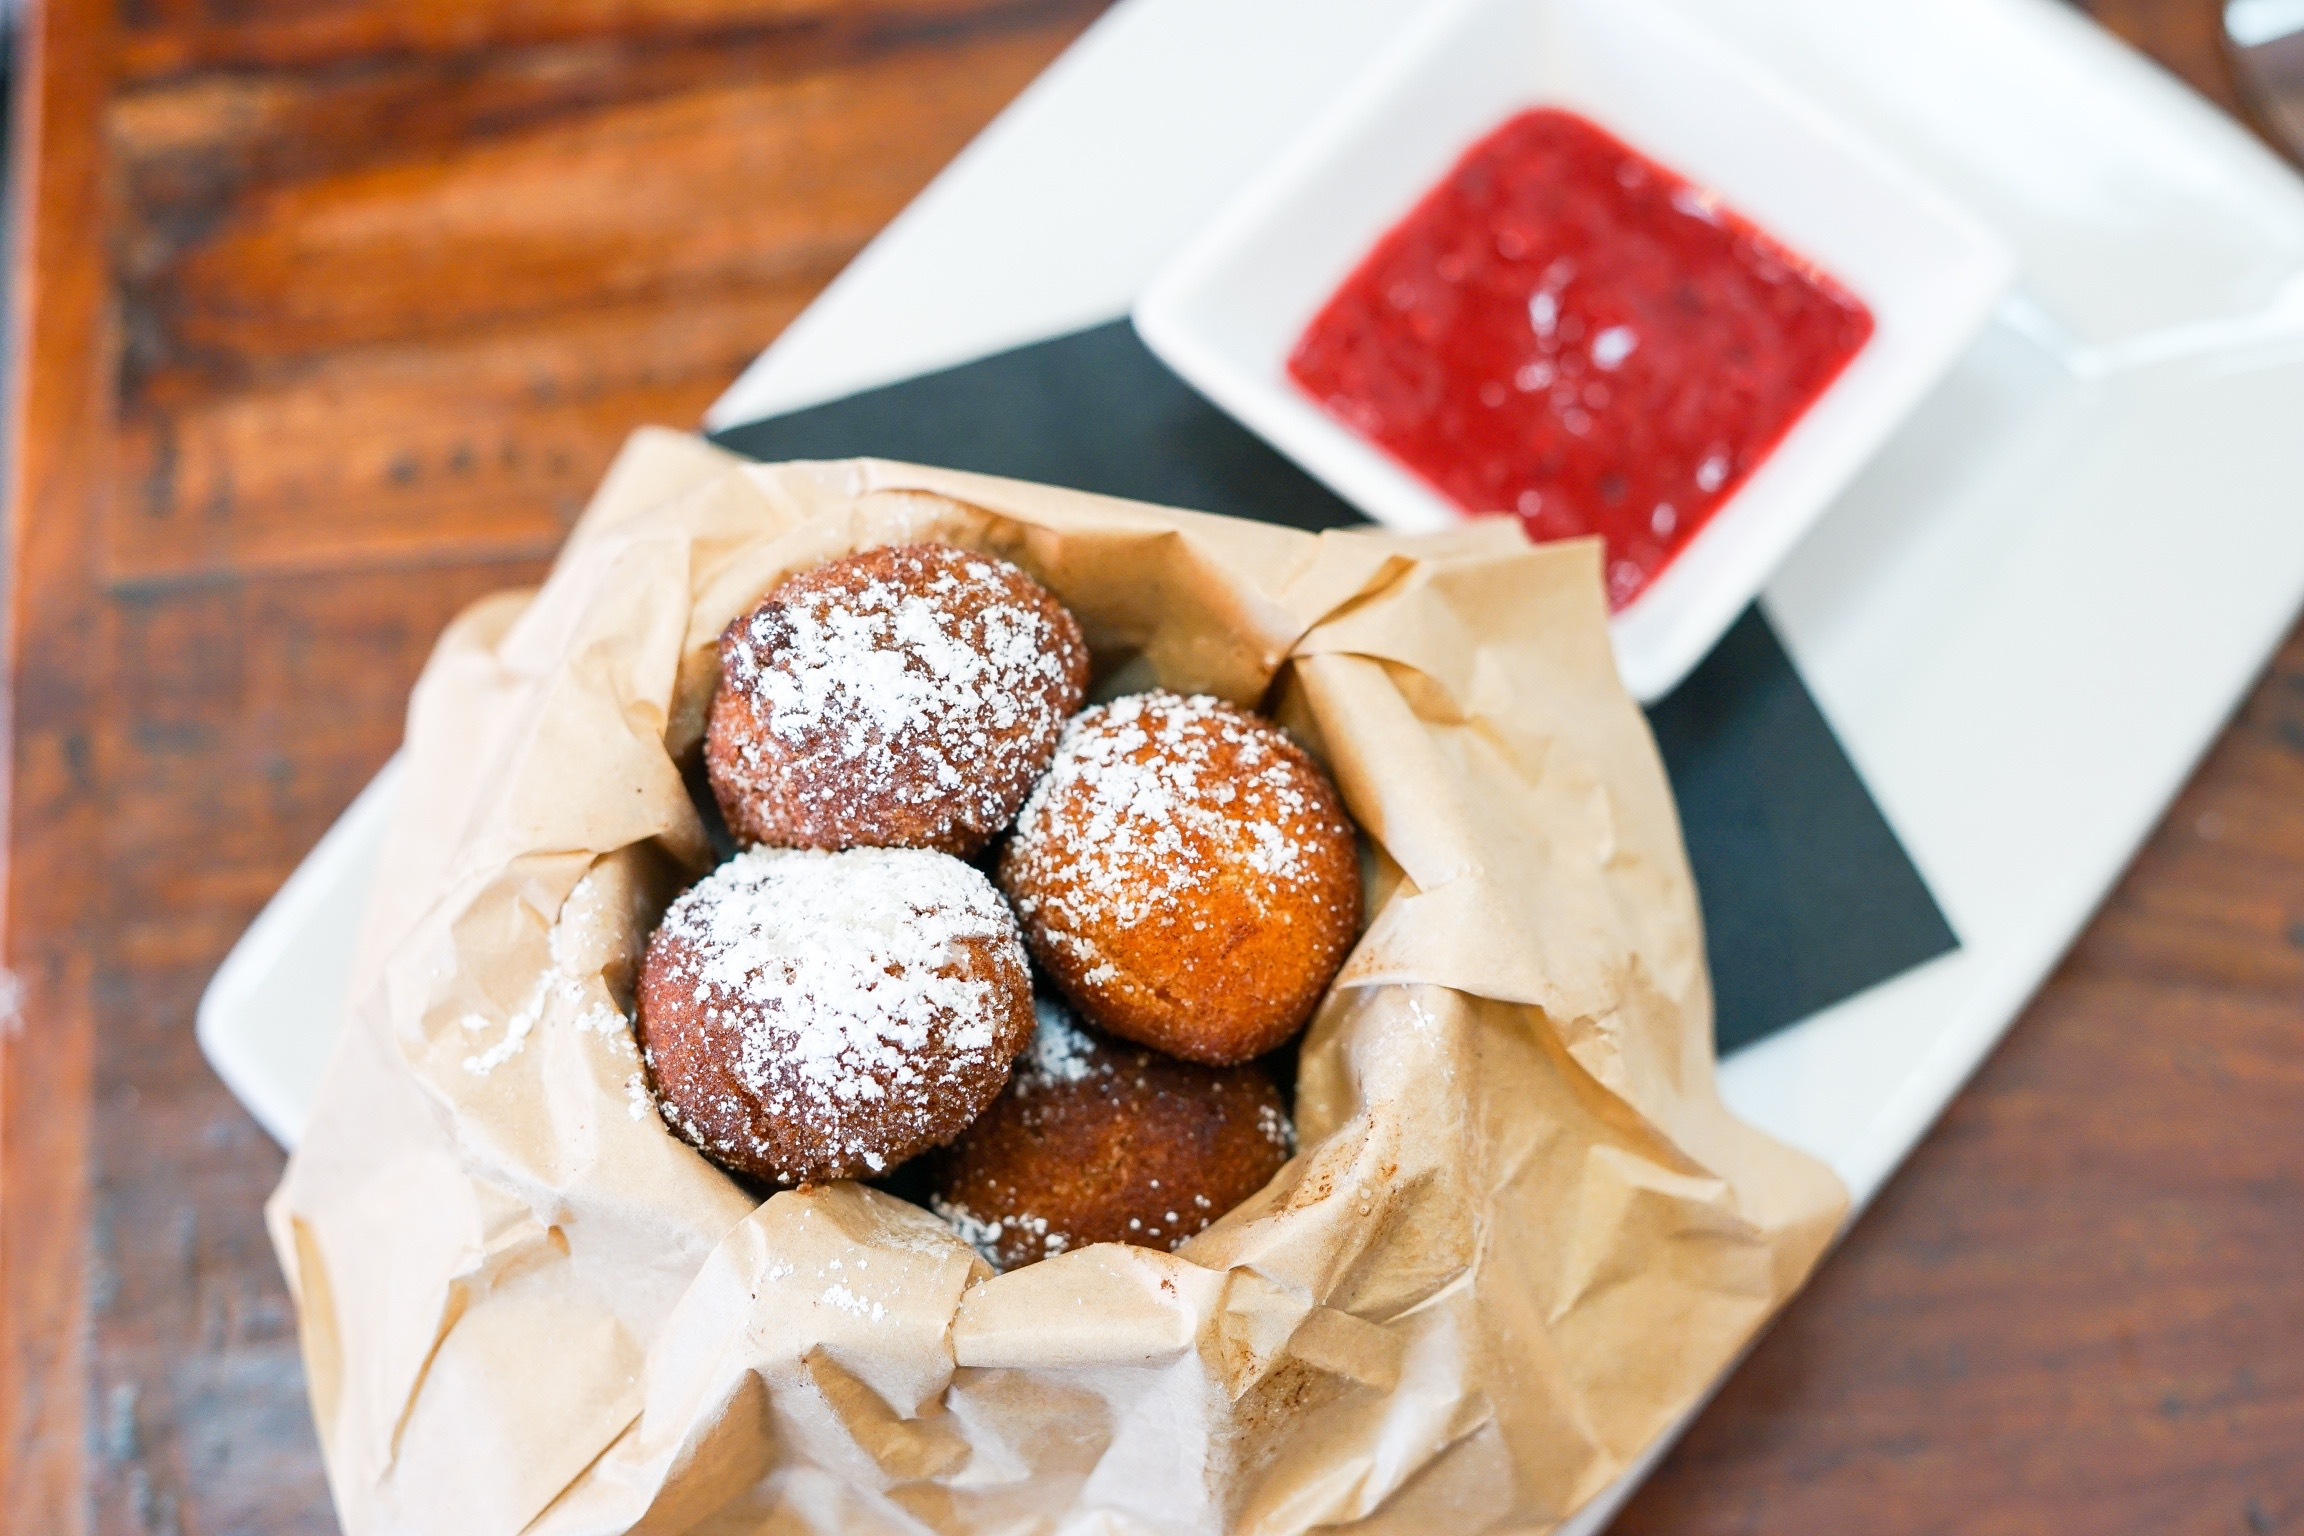 Donut Holes at The Rockefeller, Manhattan Beach, CA